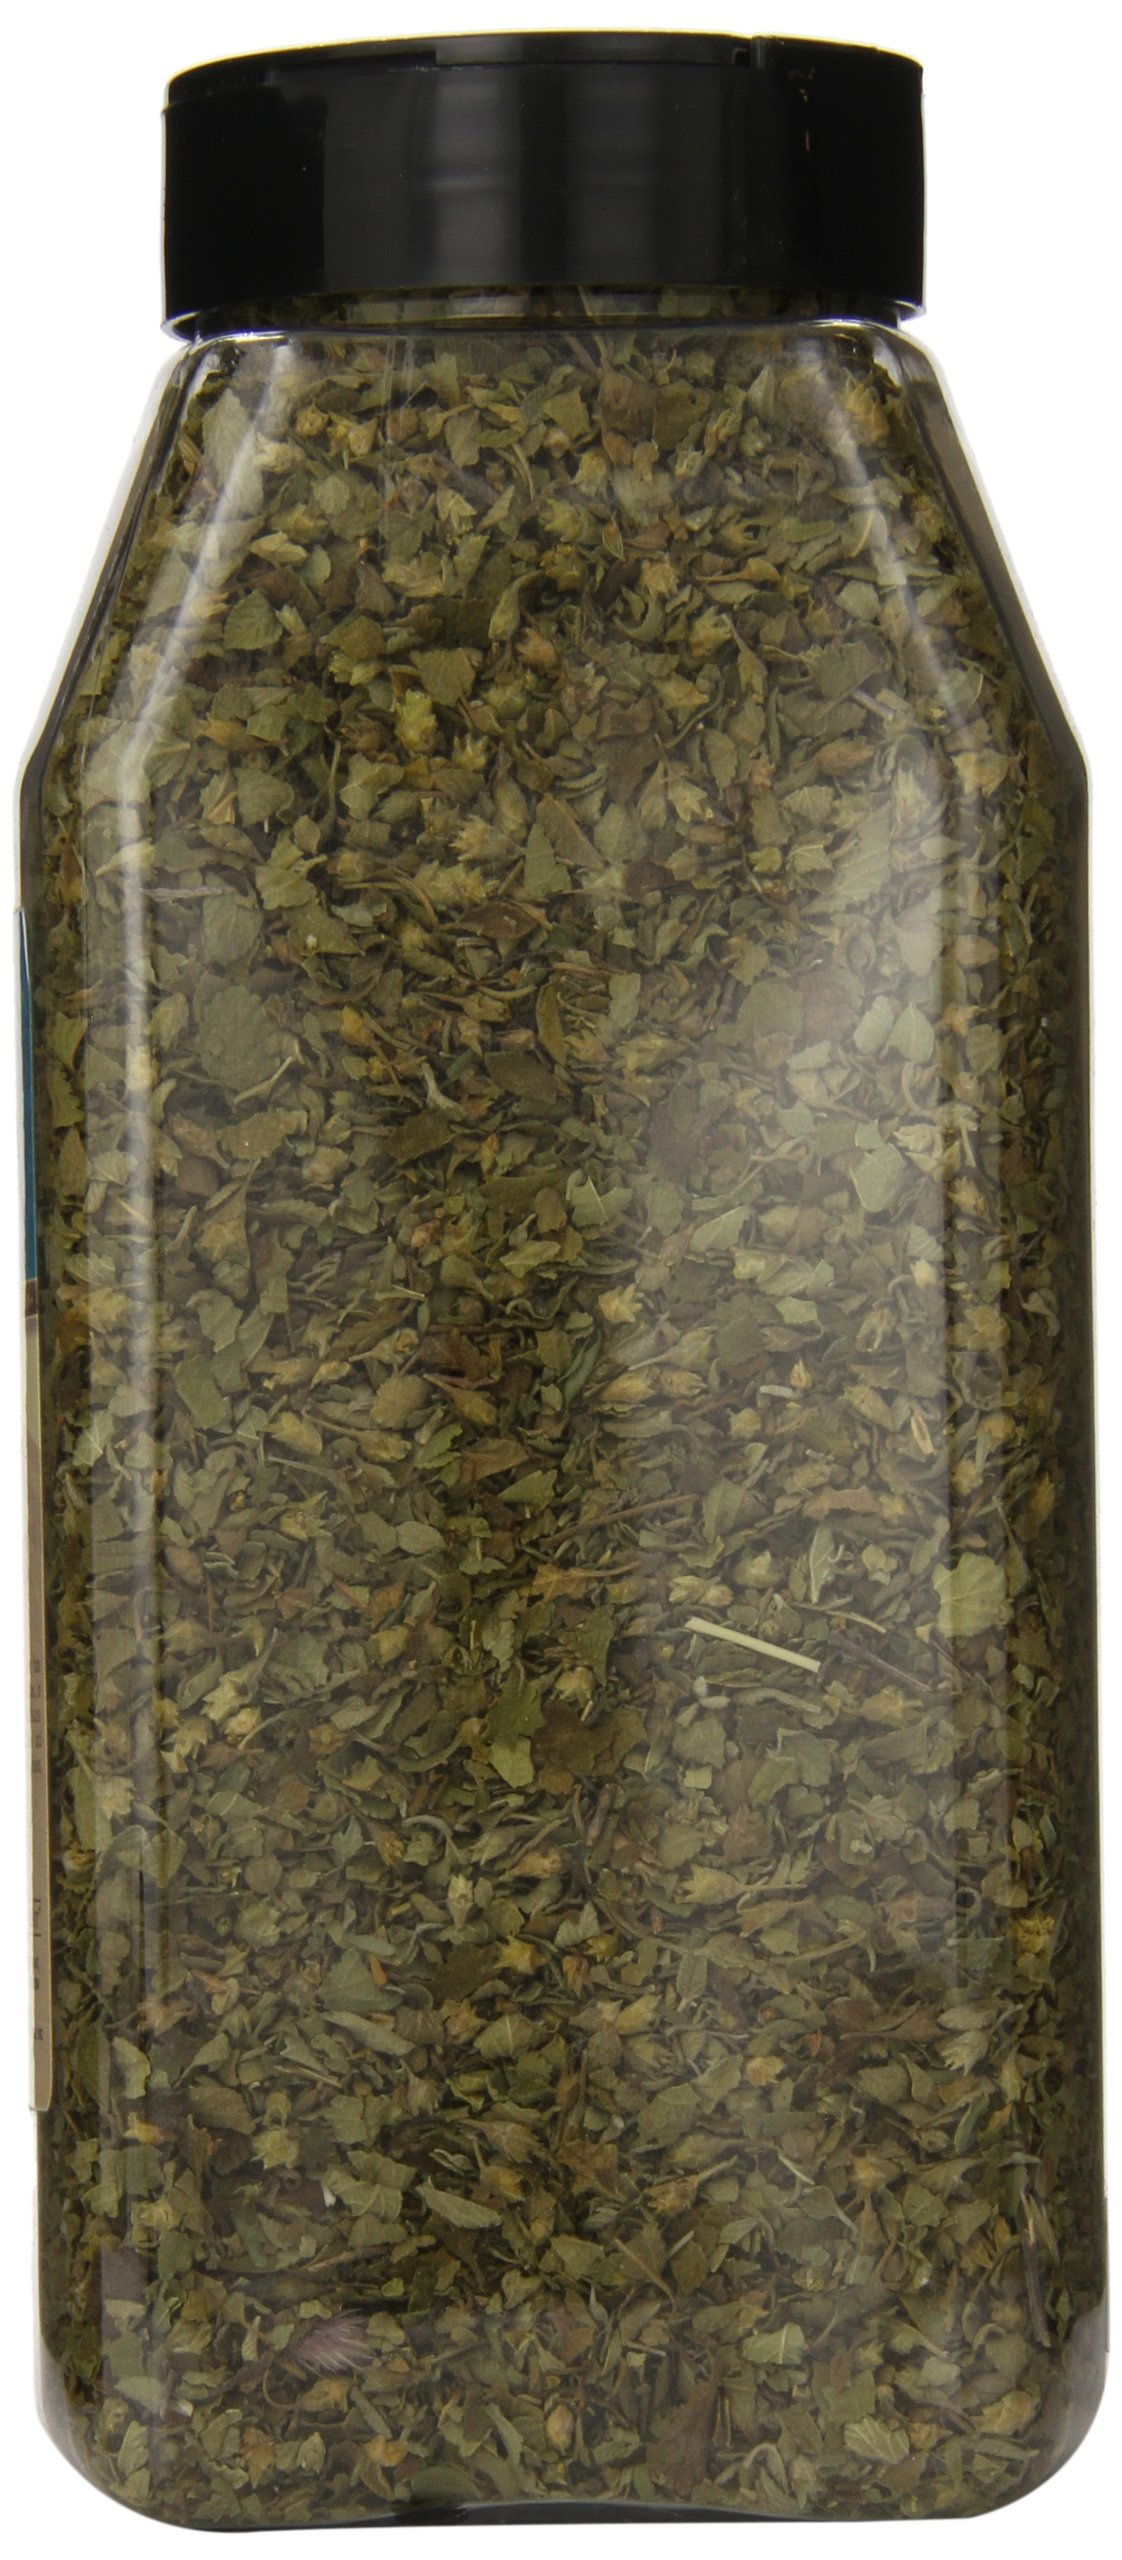 Spice Appeal Mexican Oregano Whole, 5 Ounce by Spice Appeal (Image #2)